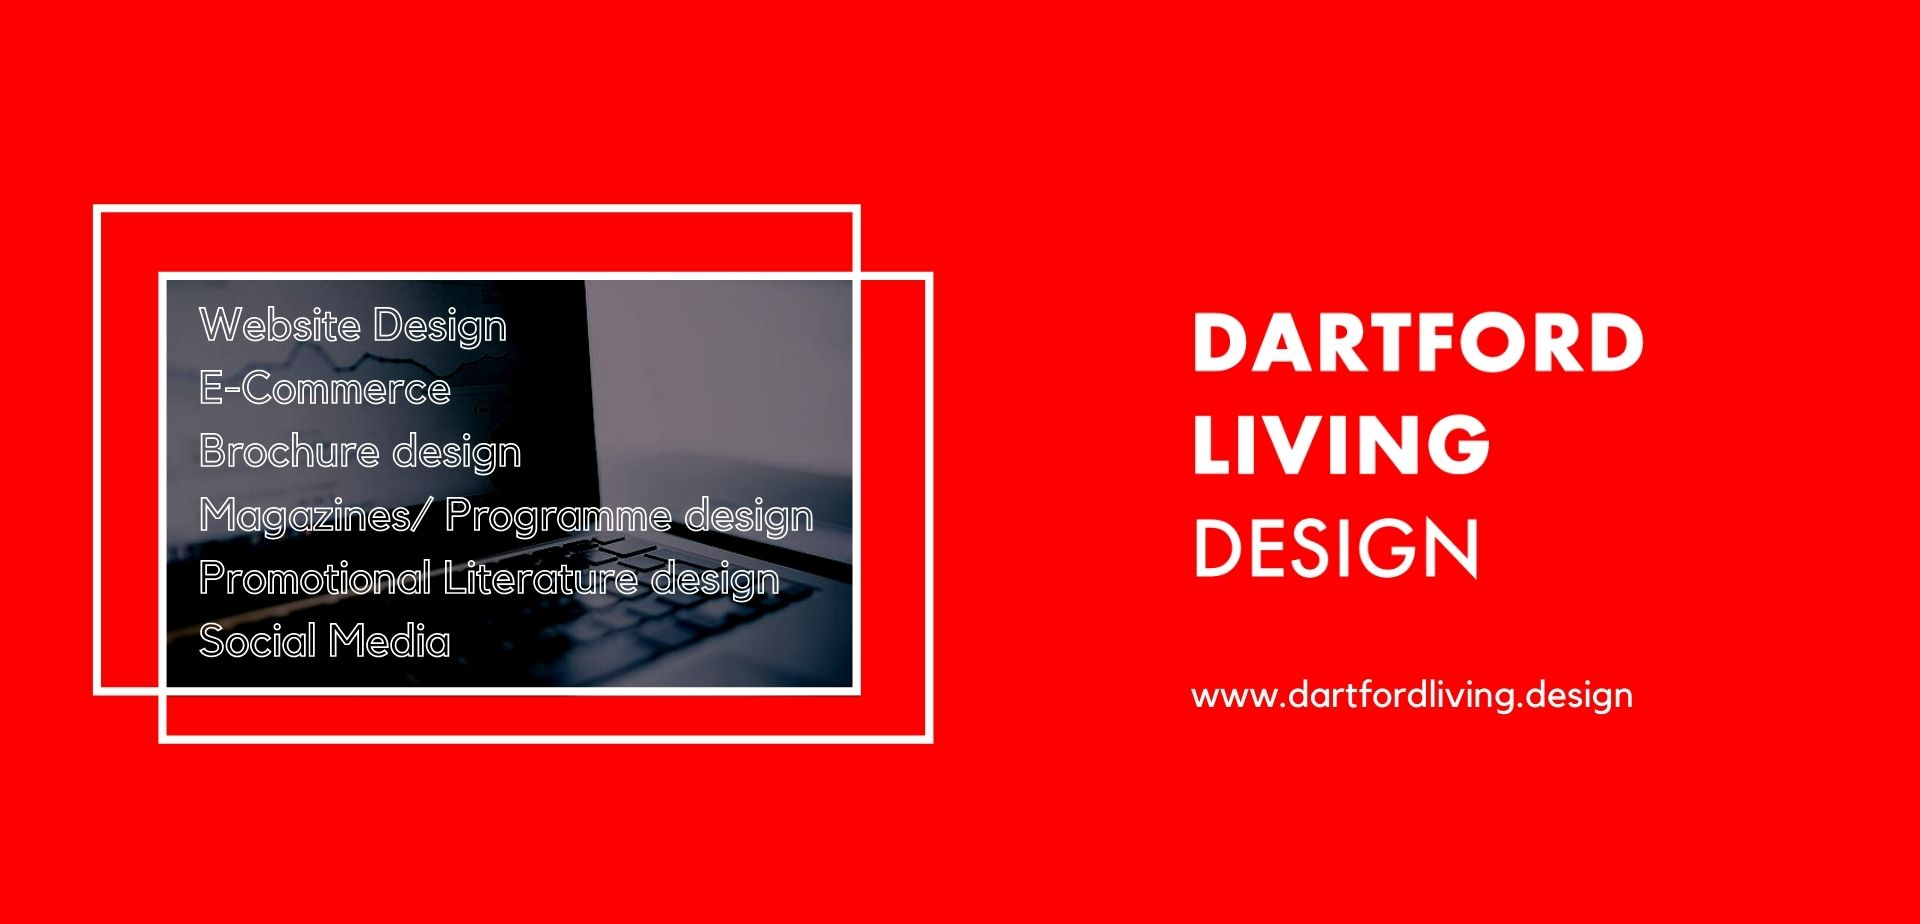 Dartford Living Design